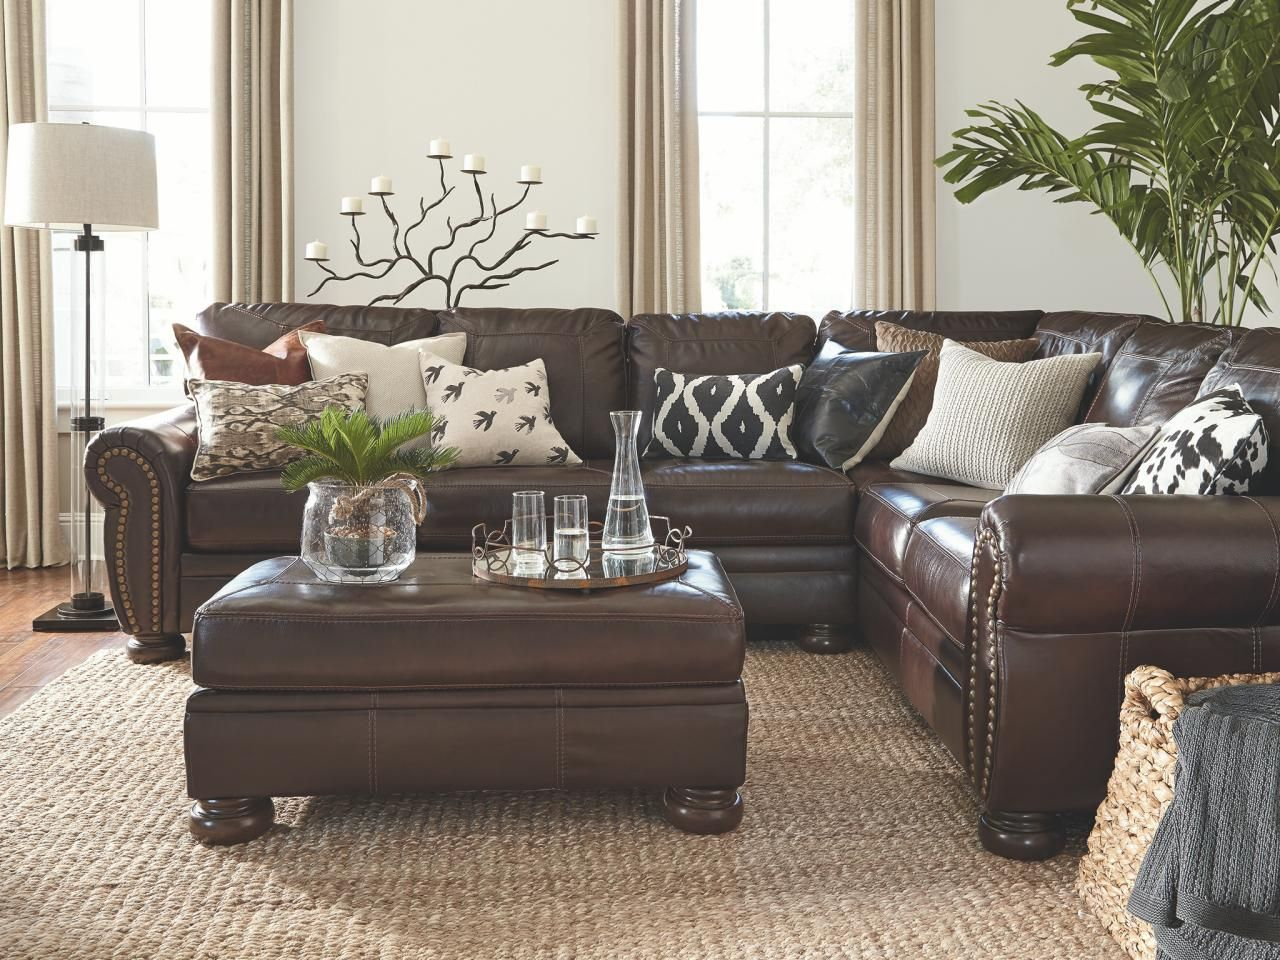 Search Viewer Brown Couch Living Room Brown Living Room Decor Brown Living Room